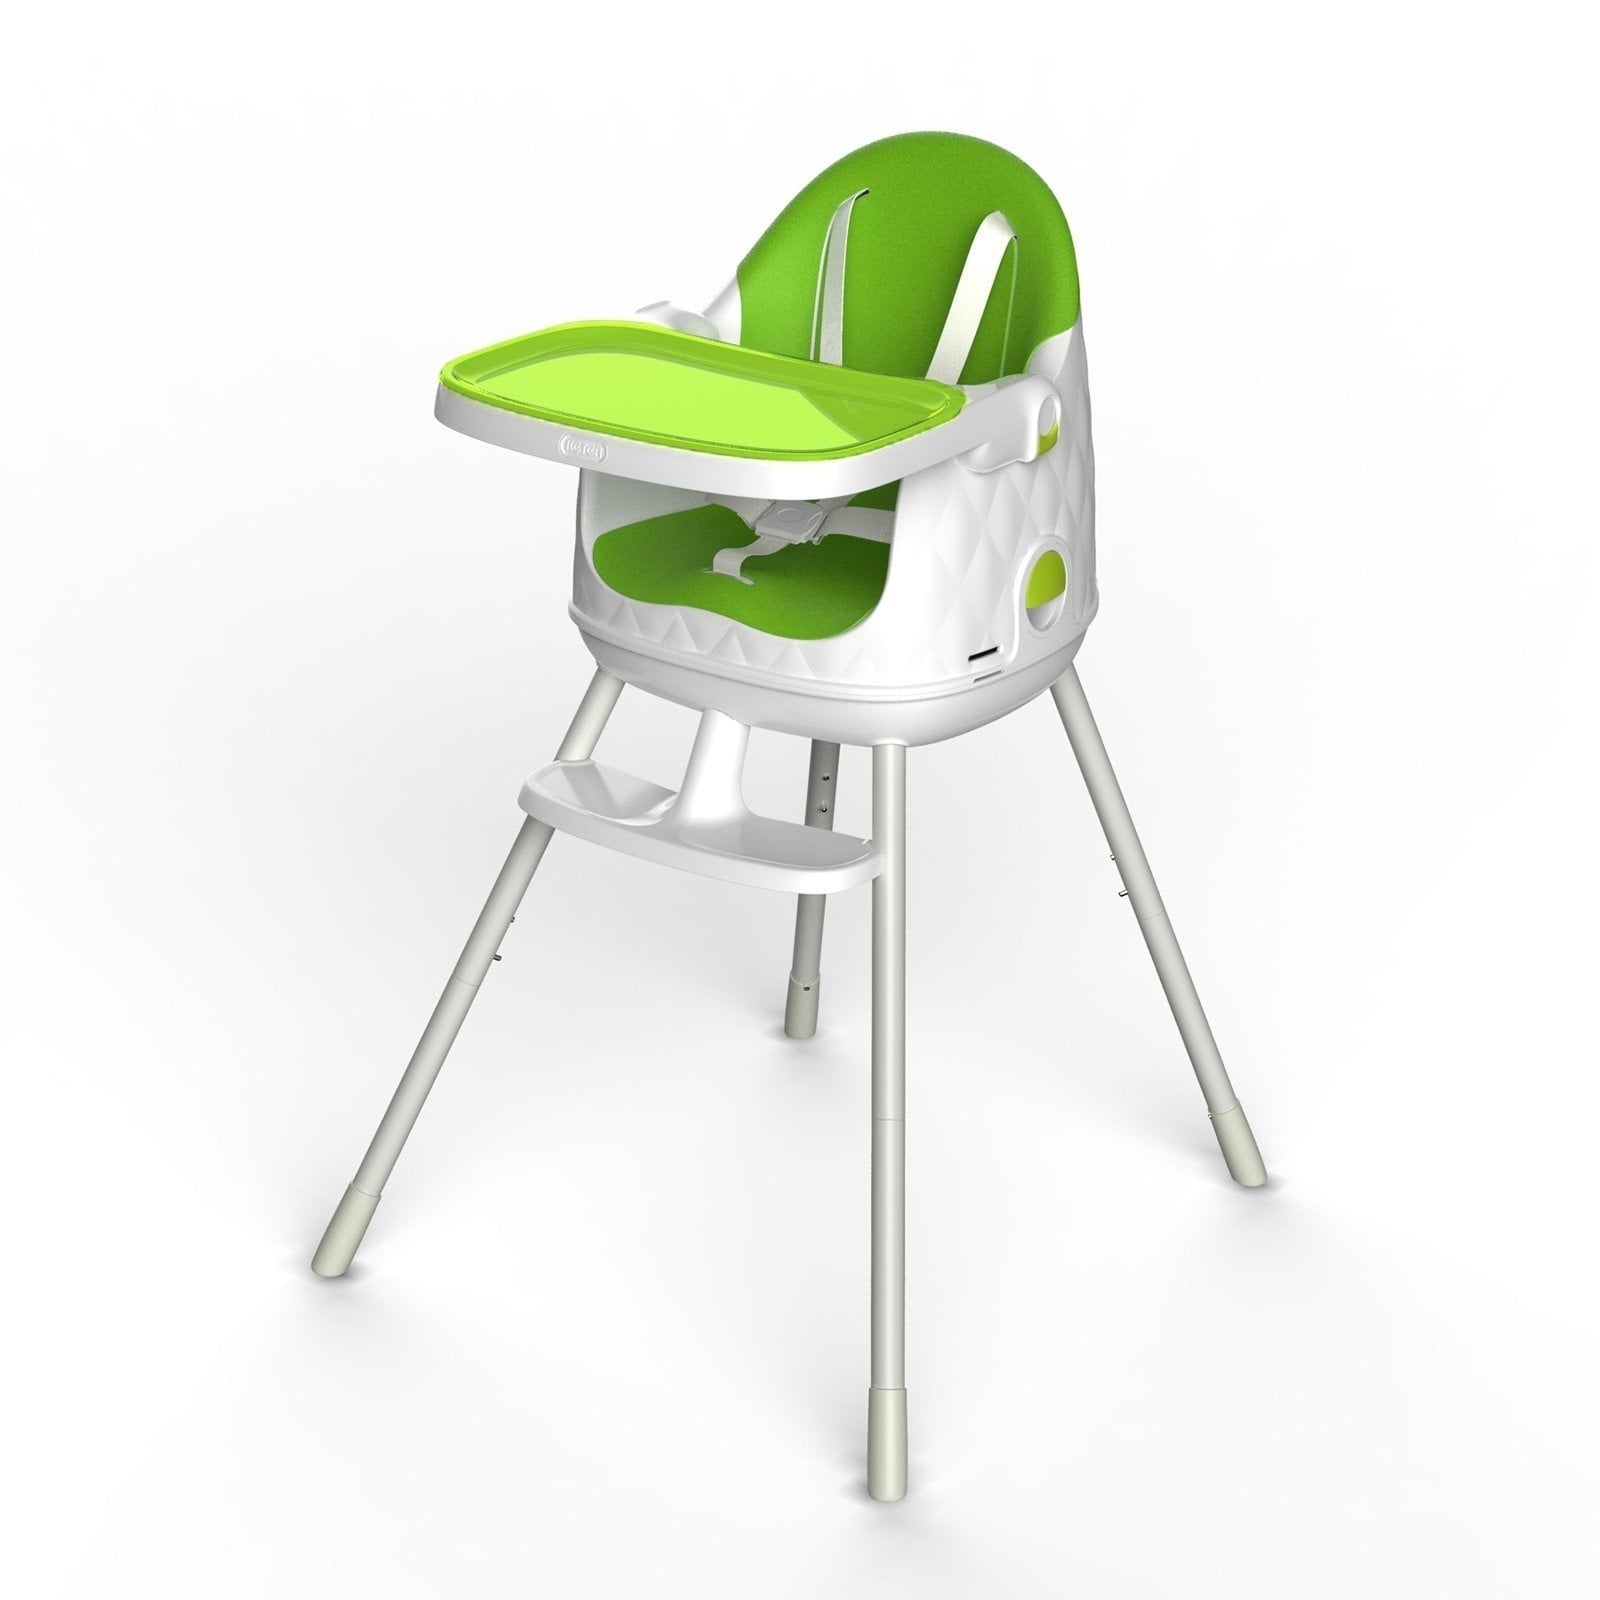 Keter Multi-Dine 3 Stage Portable Folding High Chair (Whi...